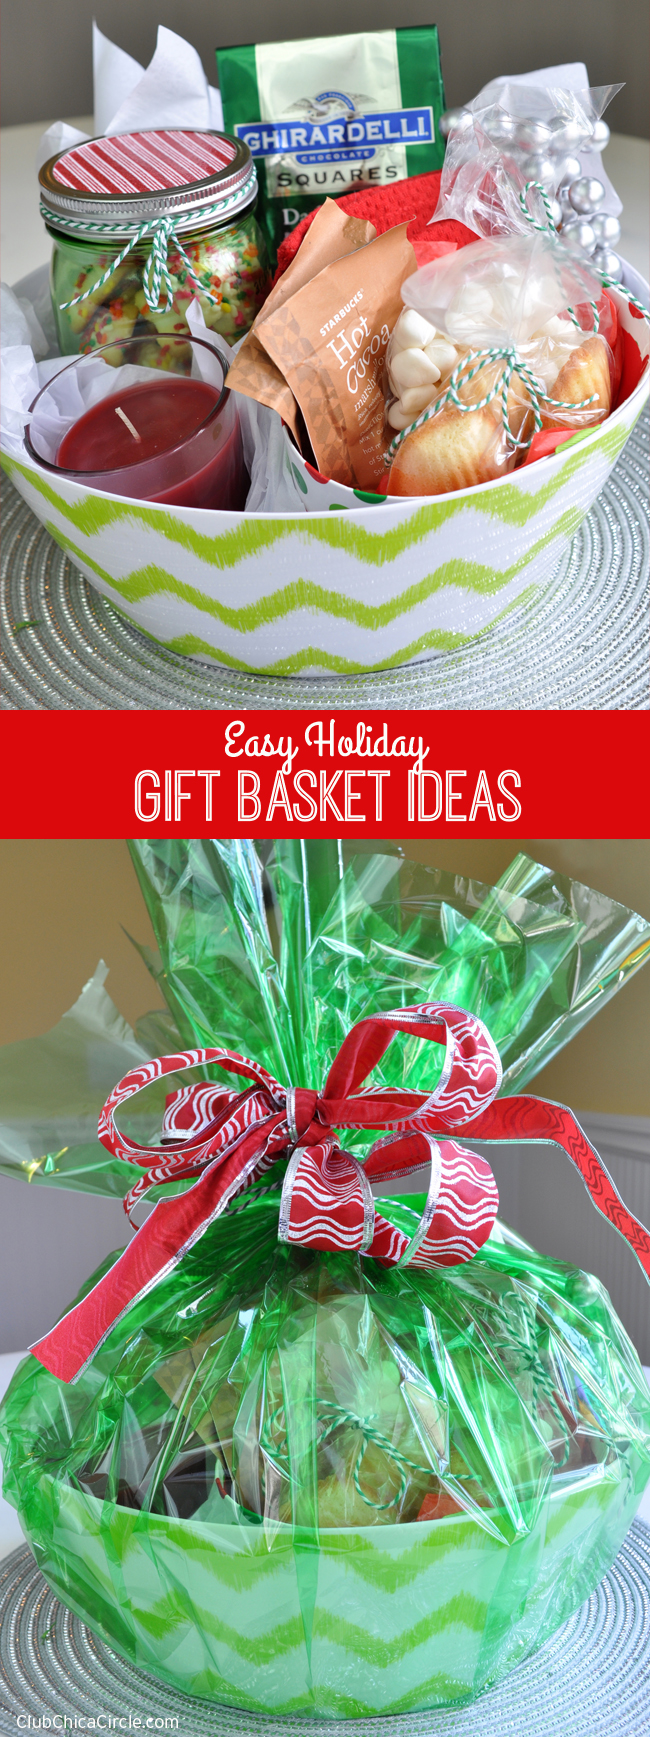 Easy holiday gift basket ideas giveaway